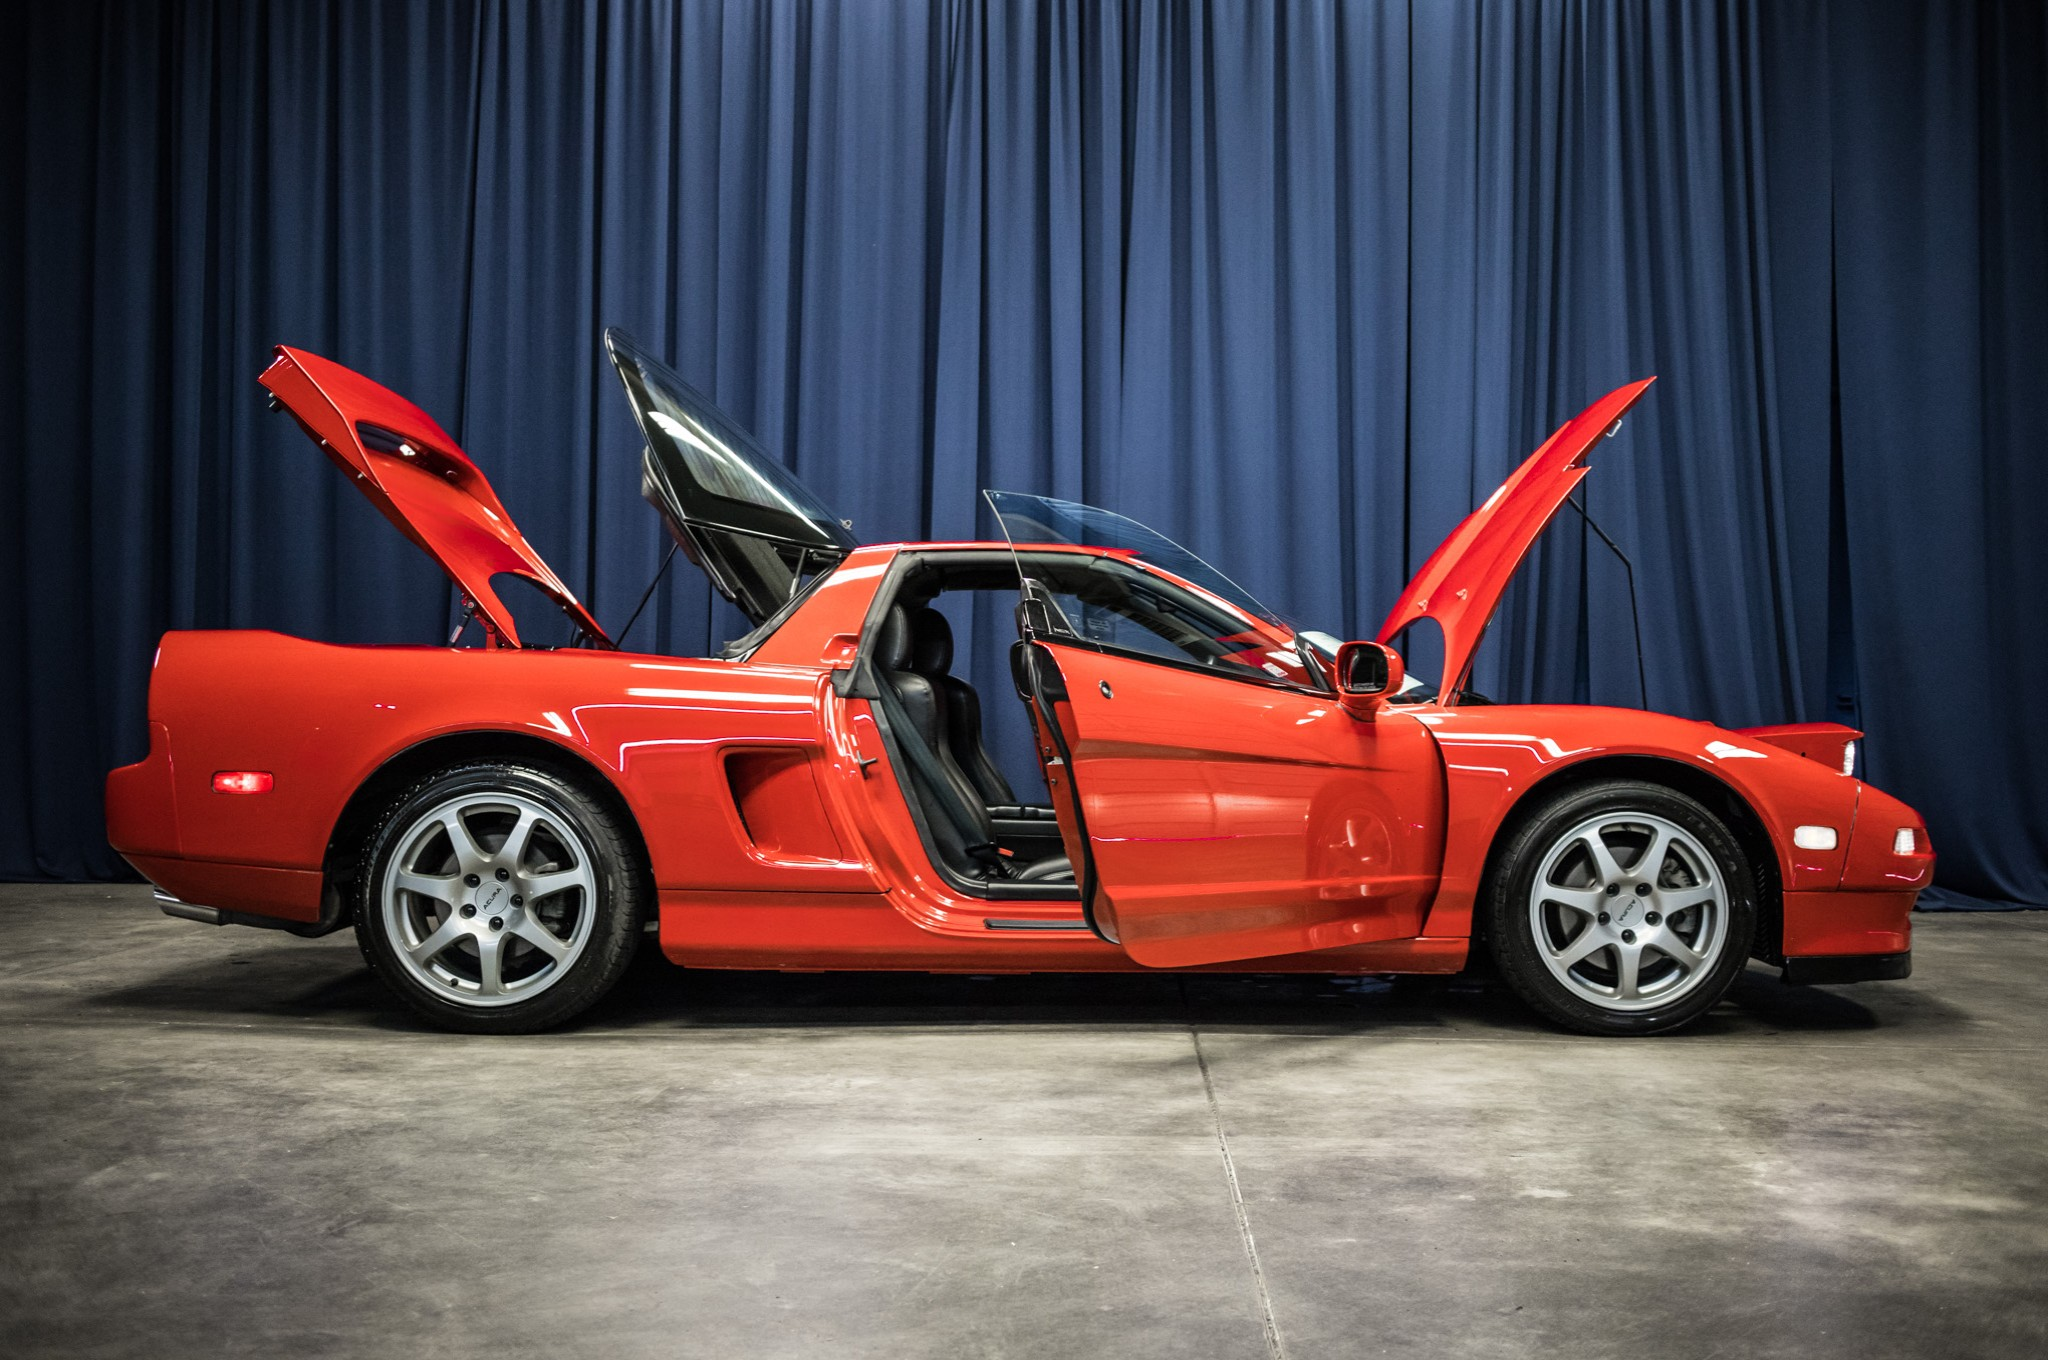 acura vehicle nsx review expert used of